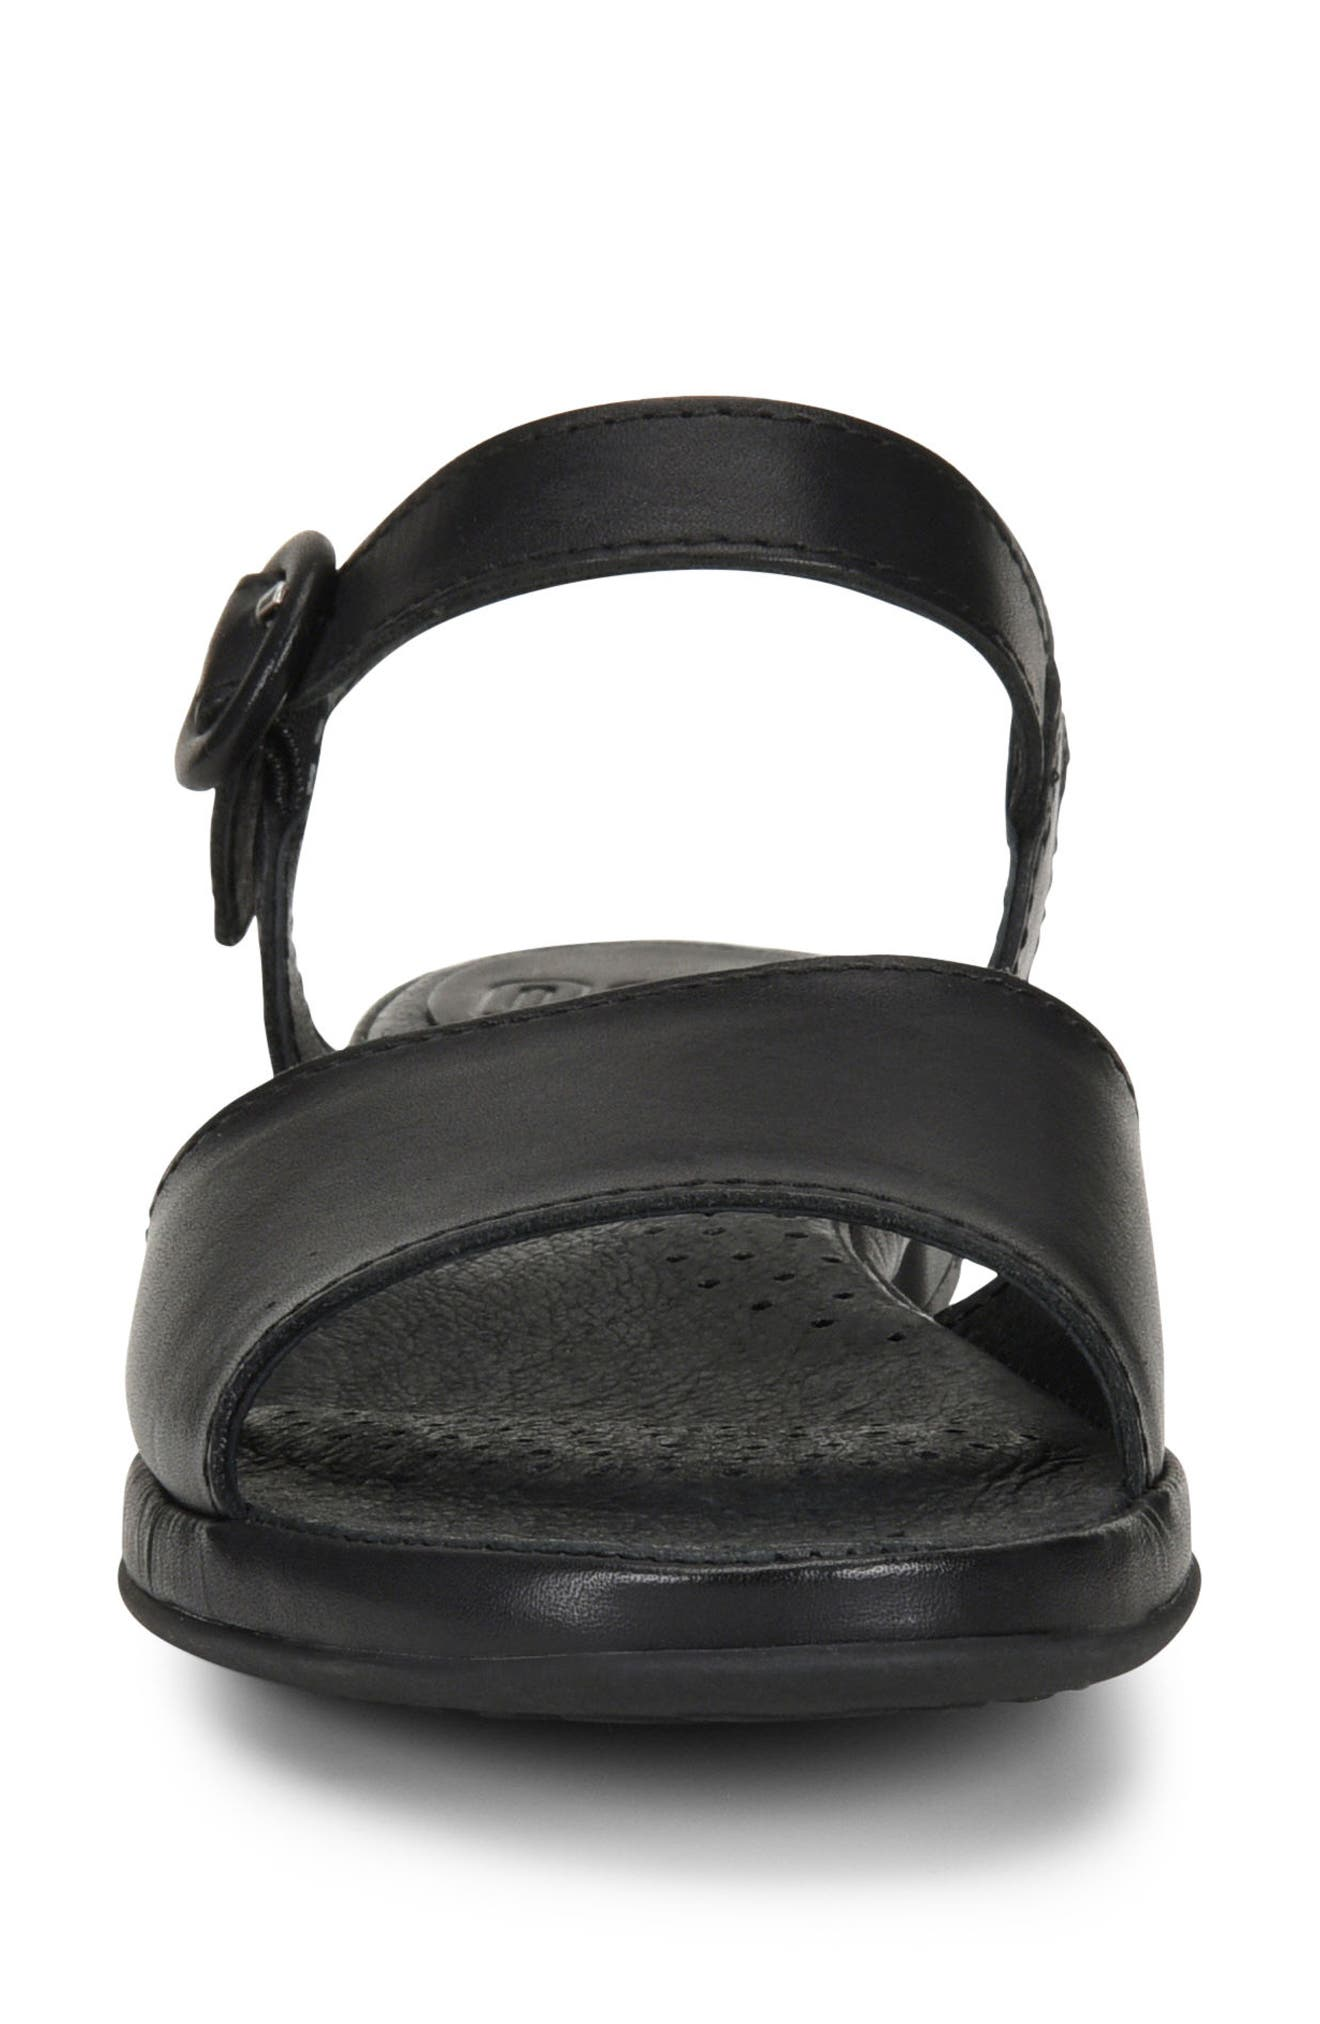 Berry Sandal,                             Alternate thumbnail 4, color,                             Black Leather